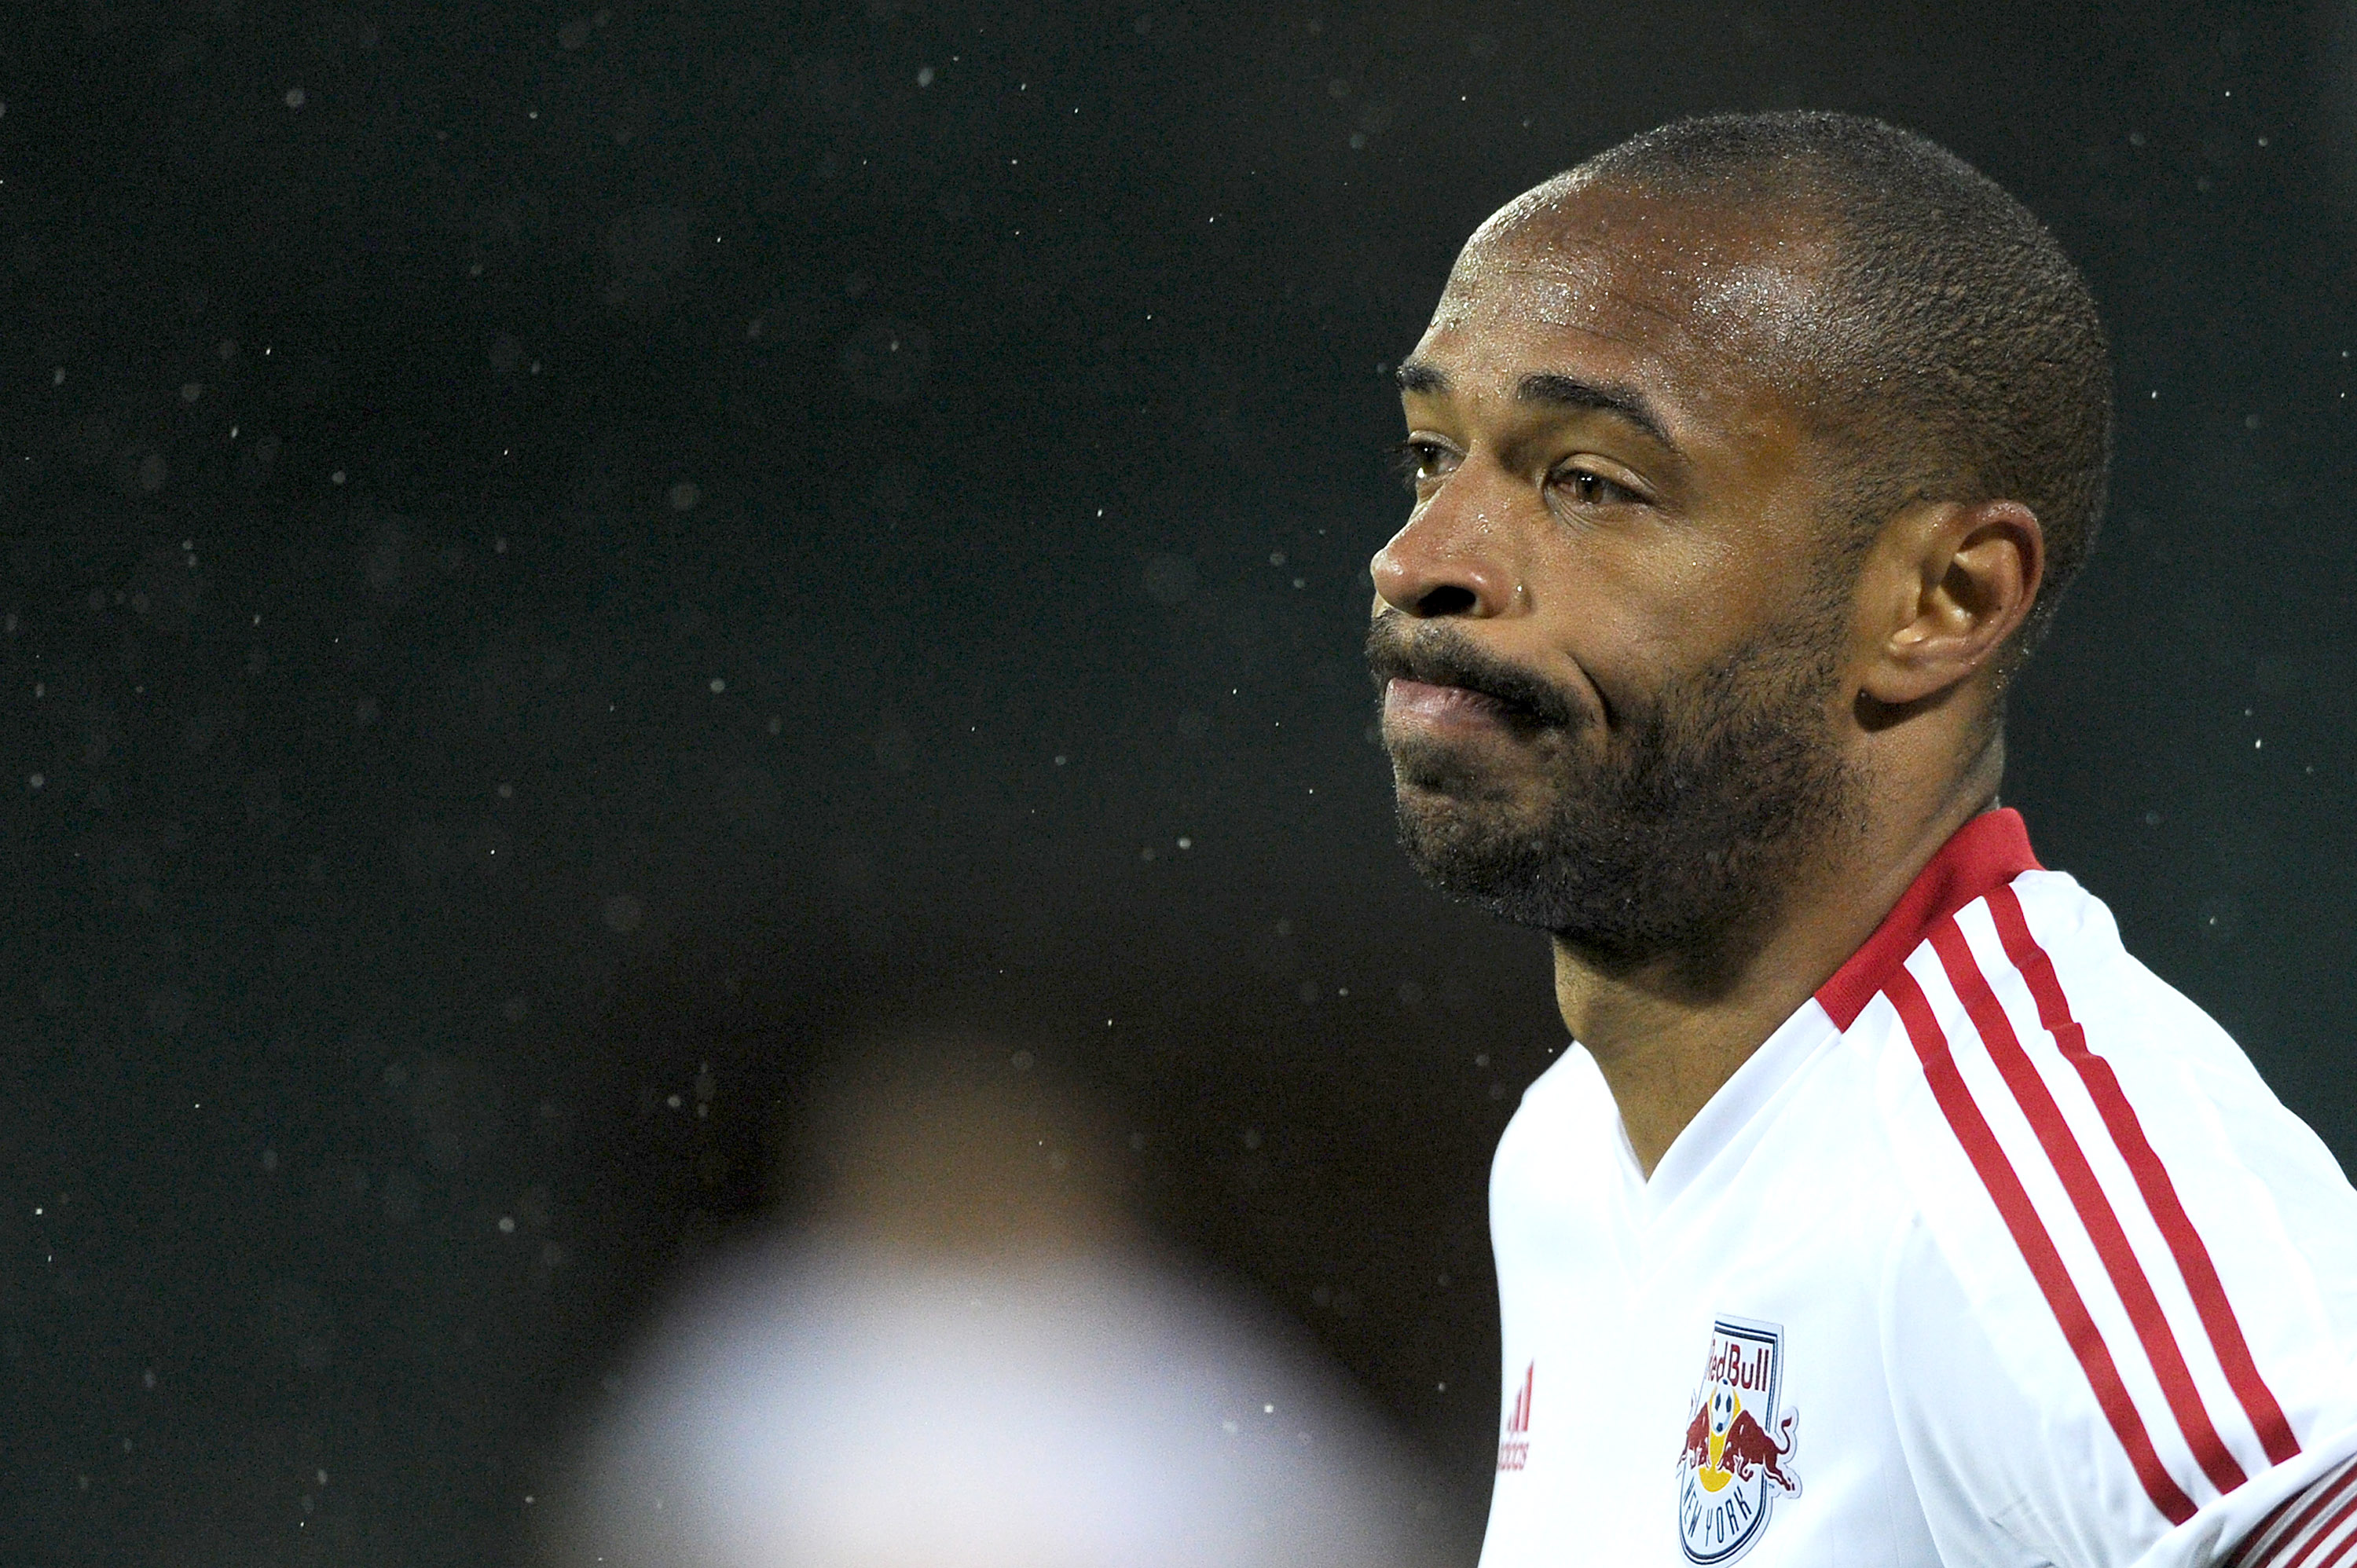 Thierry Henry Wallpapers & Picture